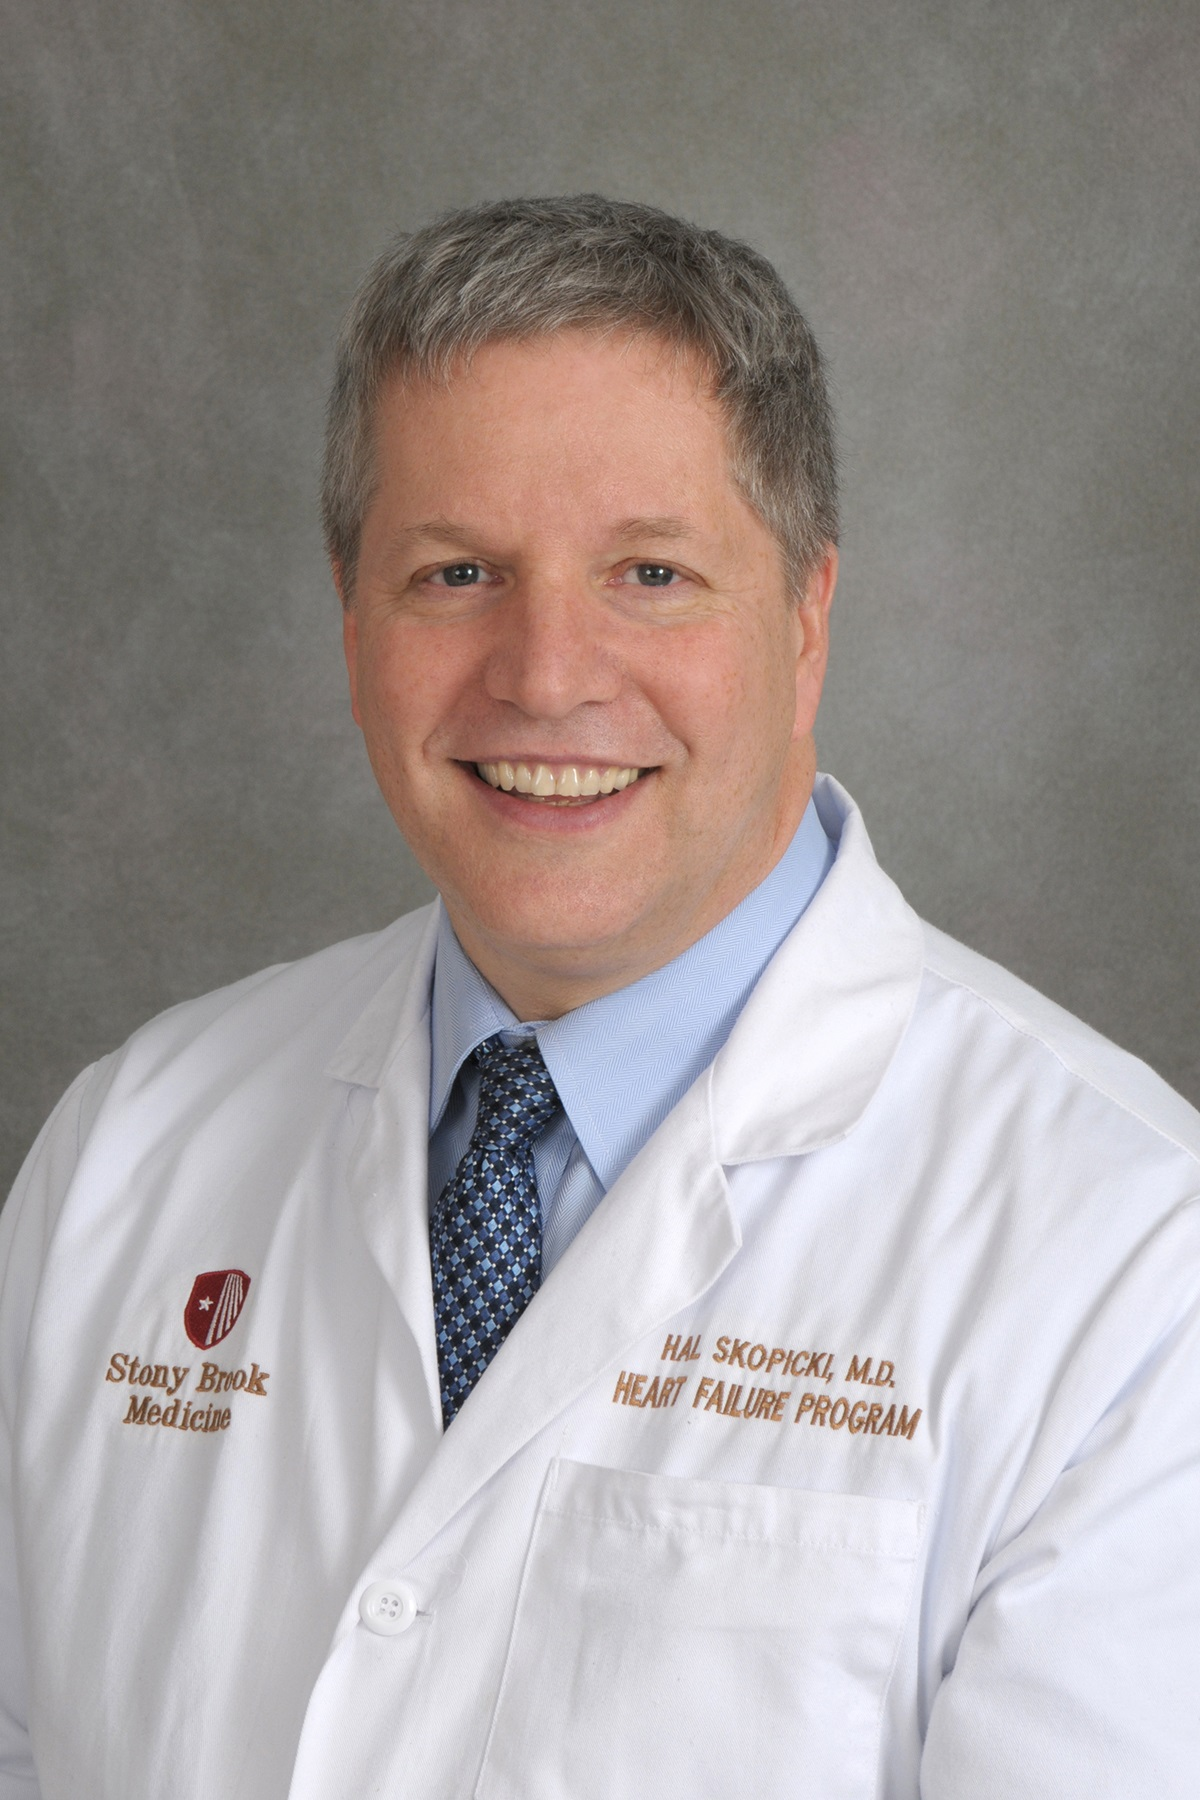 Hal Skopicki Appointed Chief of Cardiology in the Department of